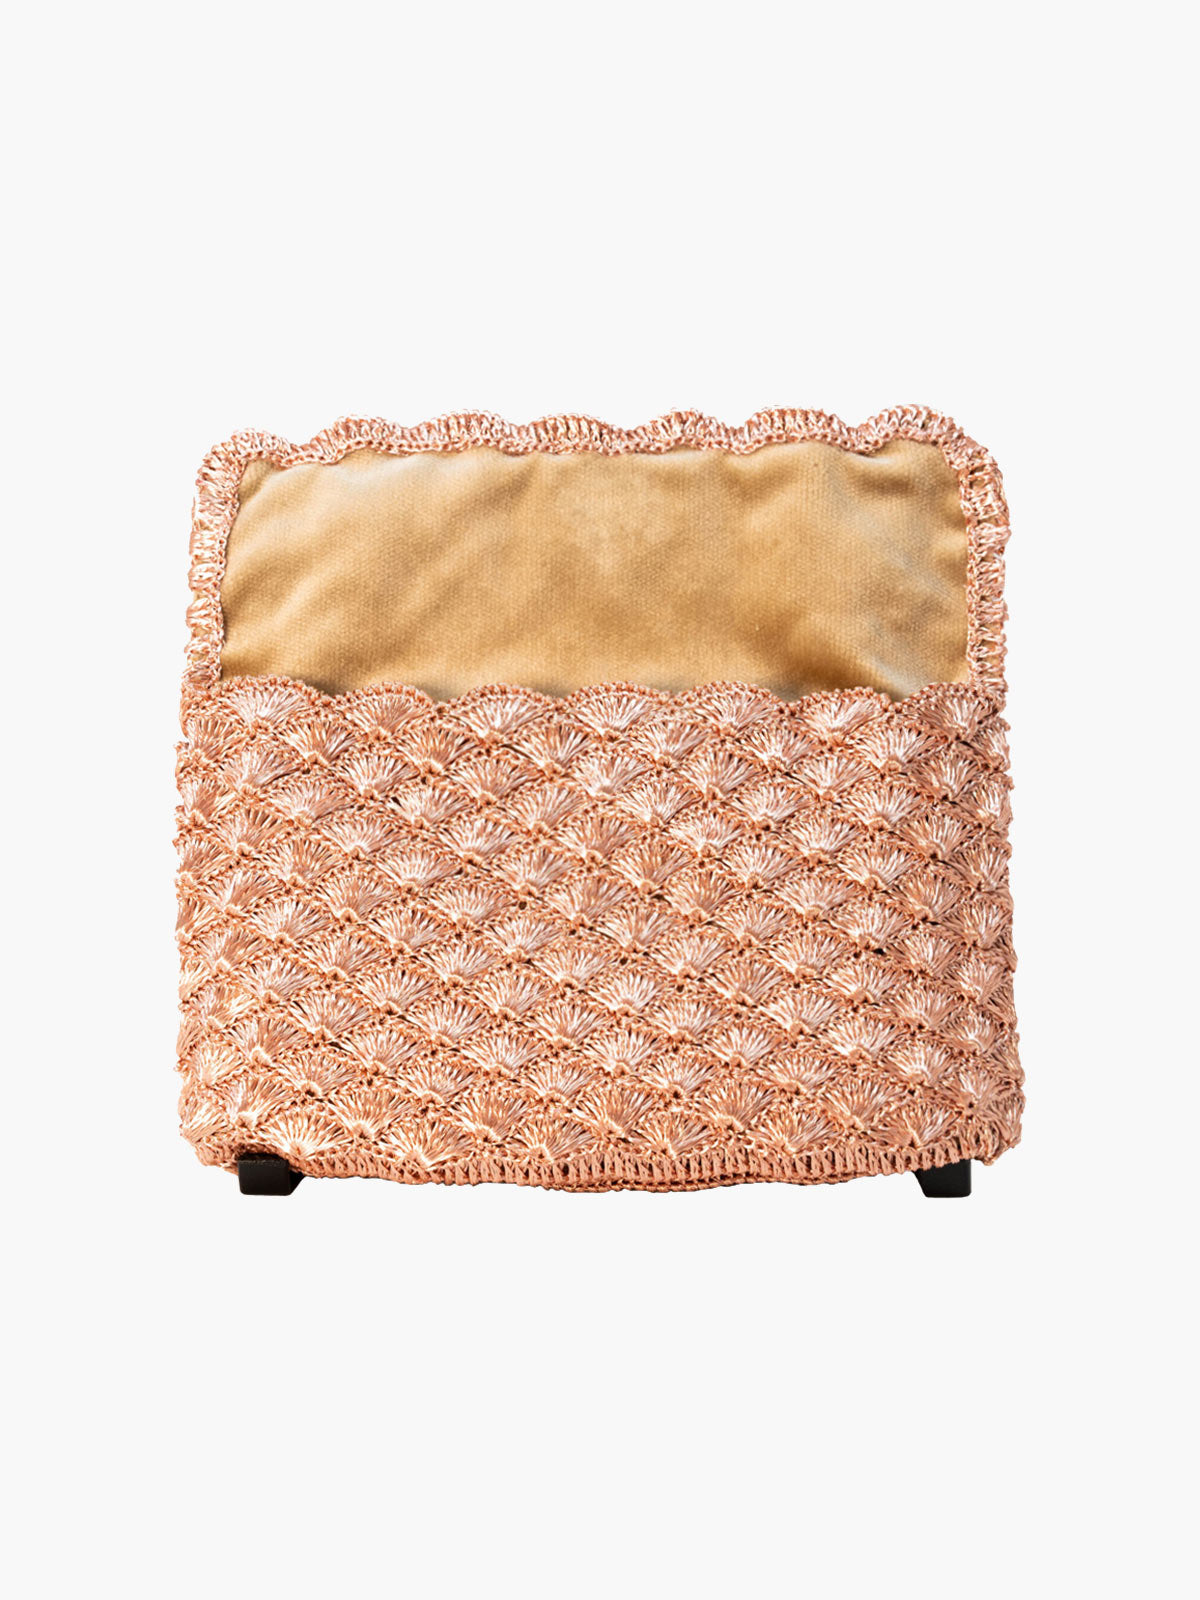 Seashell Weave Mini Metal Clutch | Rose Gold Seashell Weave Mini Metal Clutch | Rose Gold